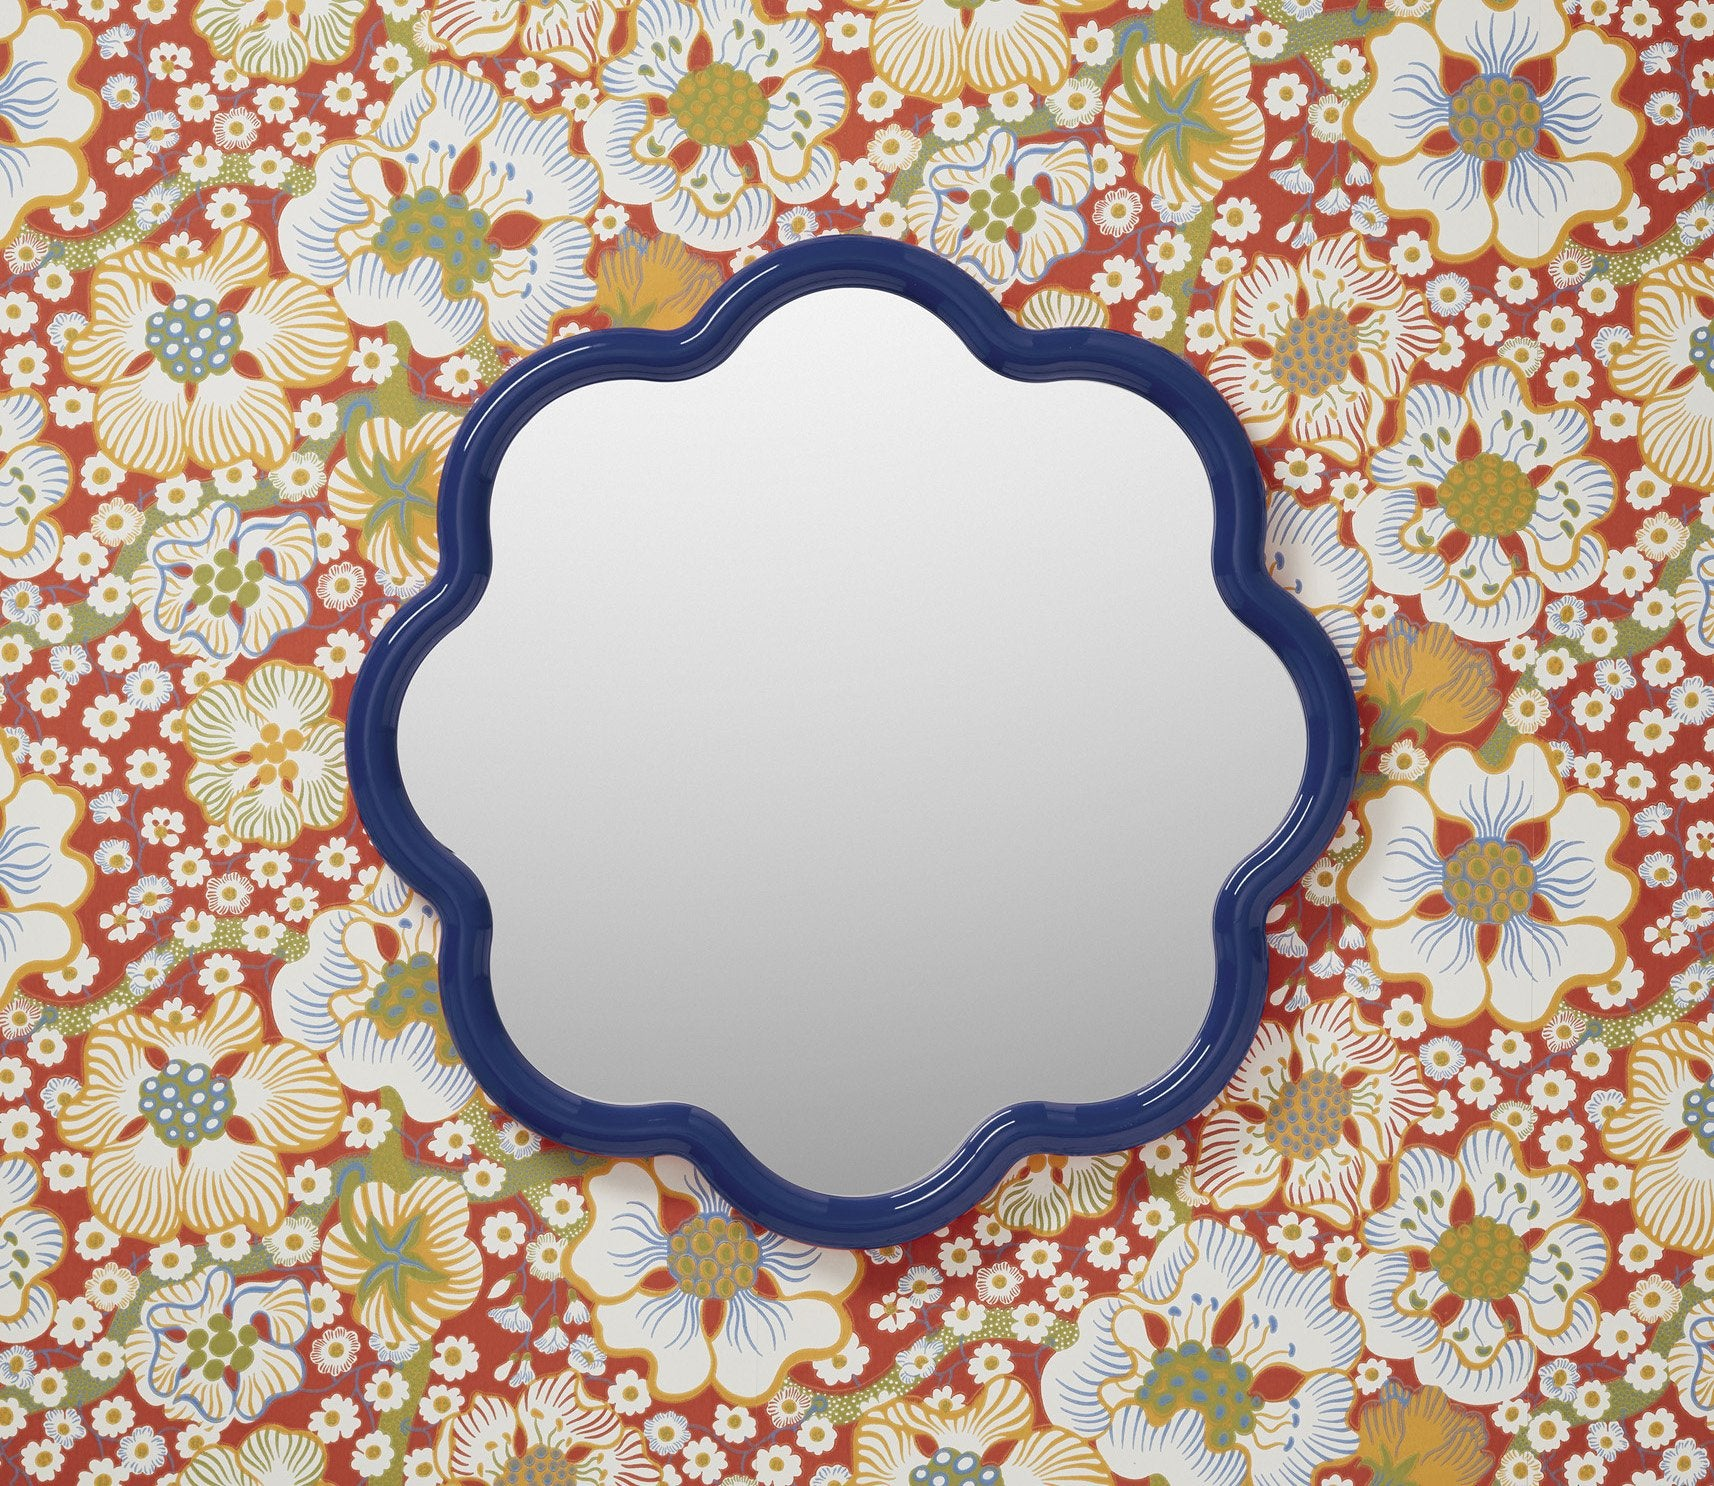 Flora Wall Mirror Small Product Image 3